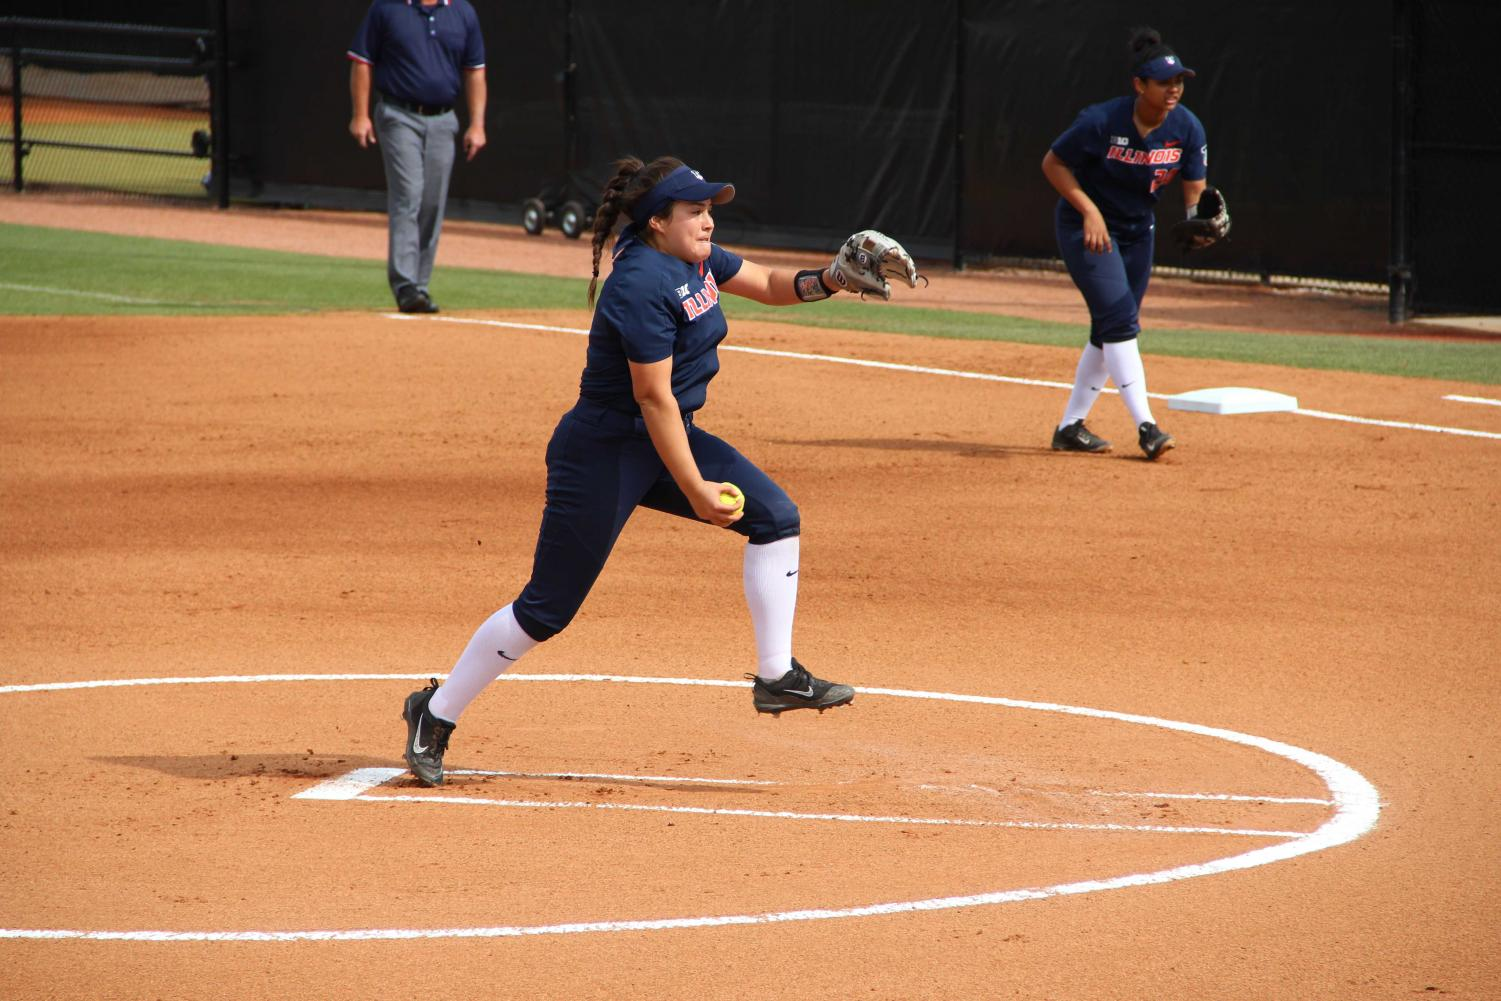 Junior Emily Oestreich pitches for Illinois. Oestreich recently moved from California and is adjusting to being on such a large campus, but she finds comfort in her new teammates.